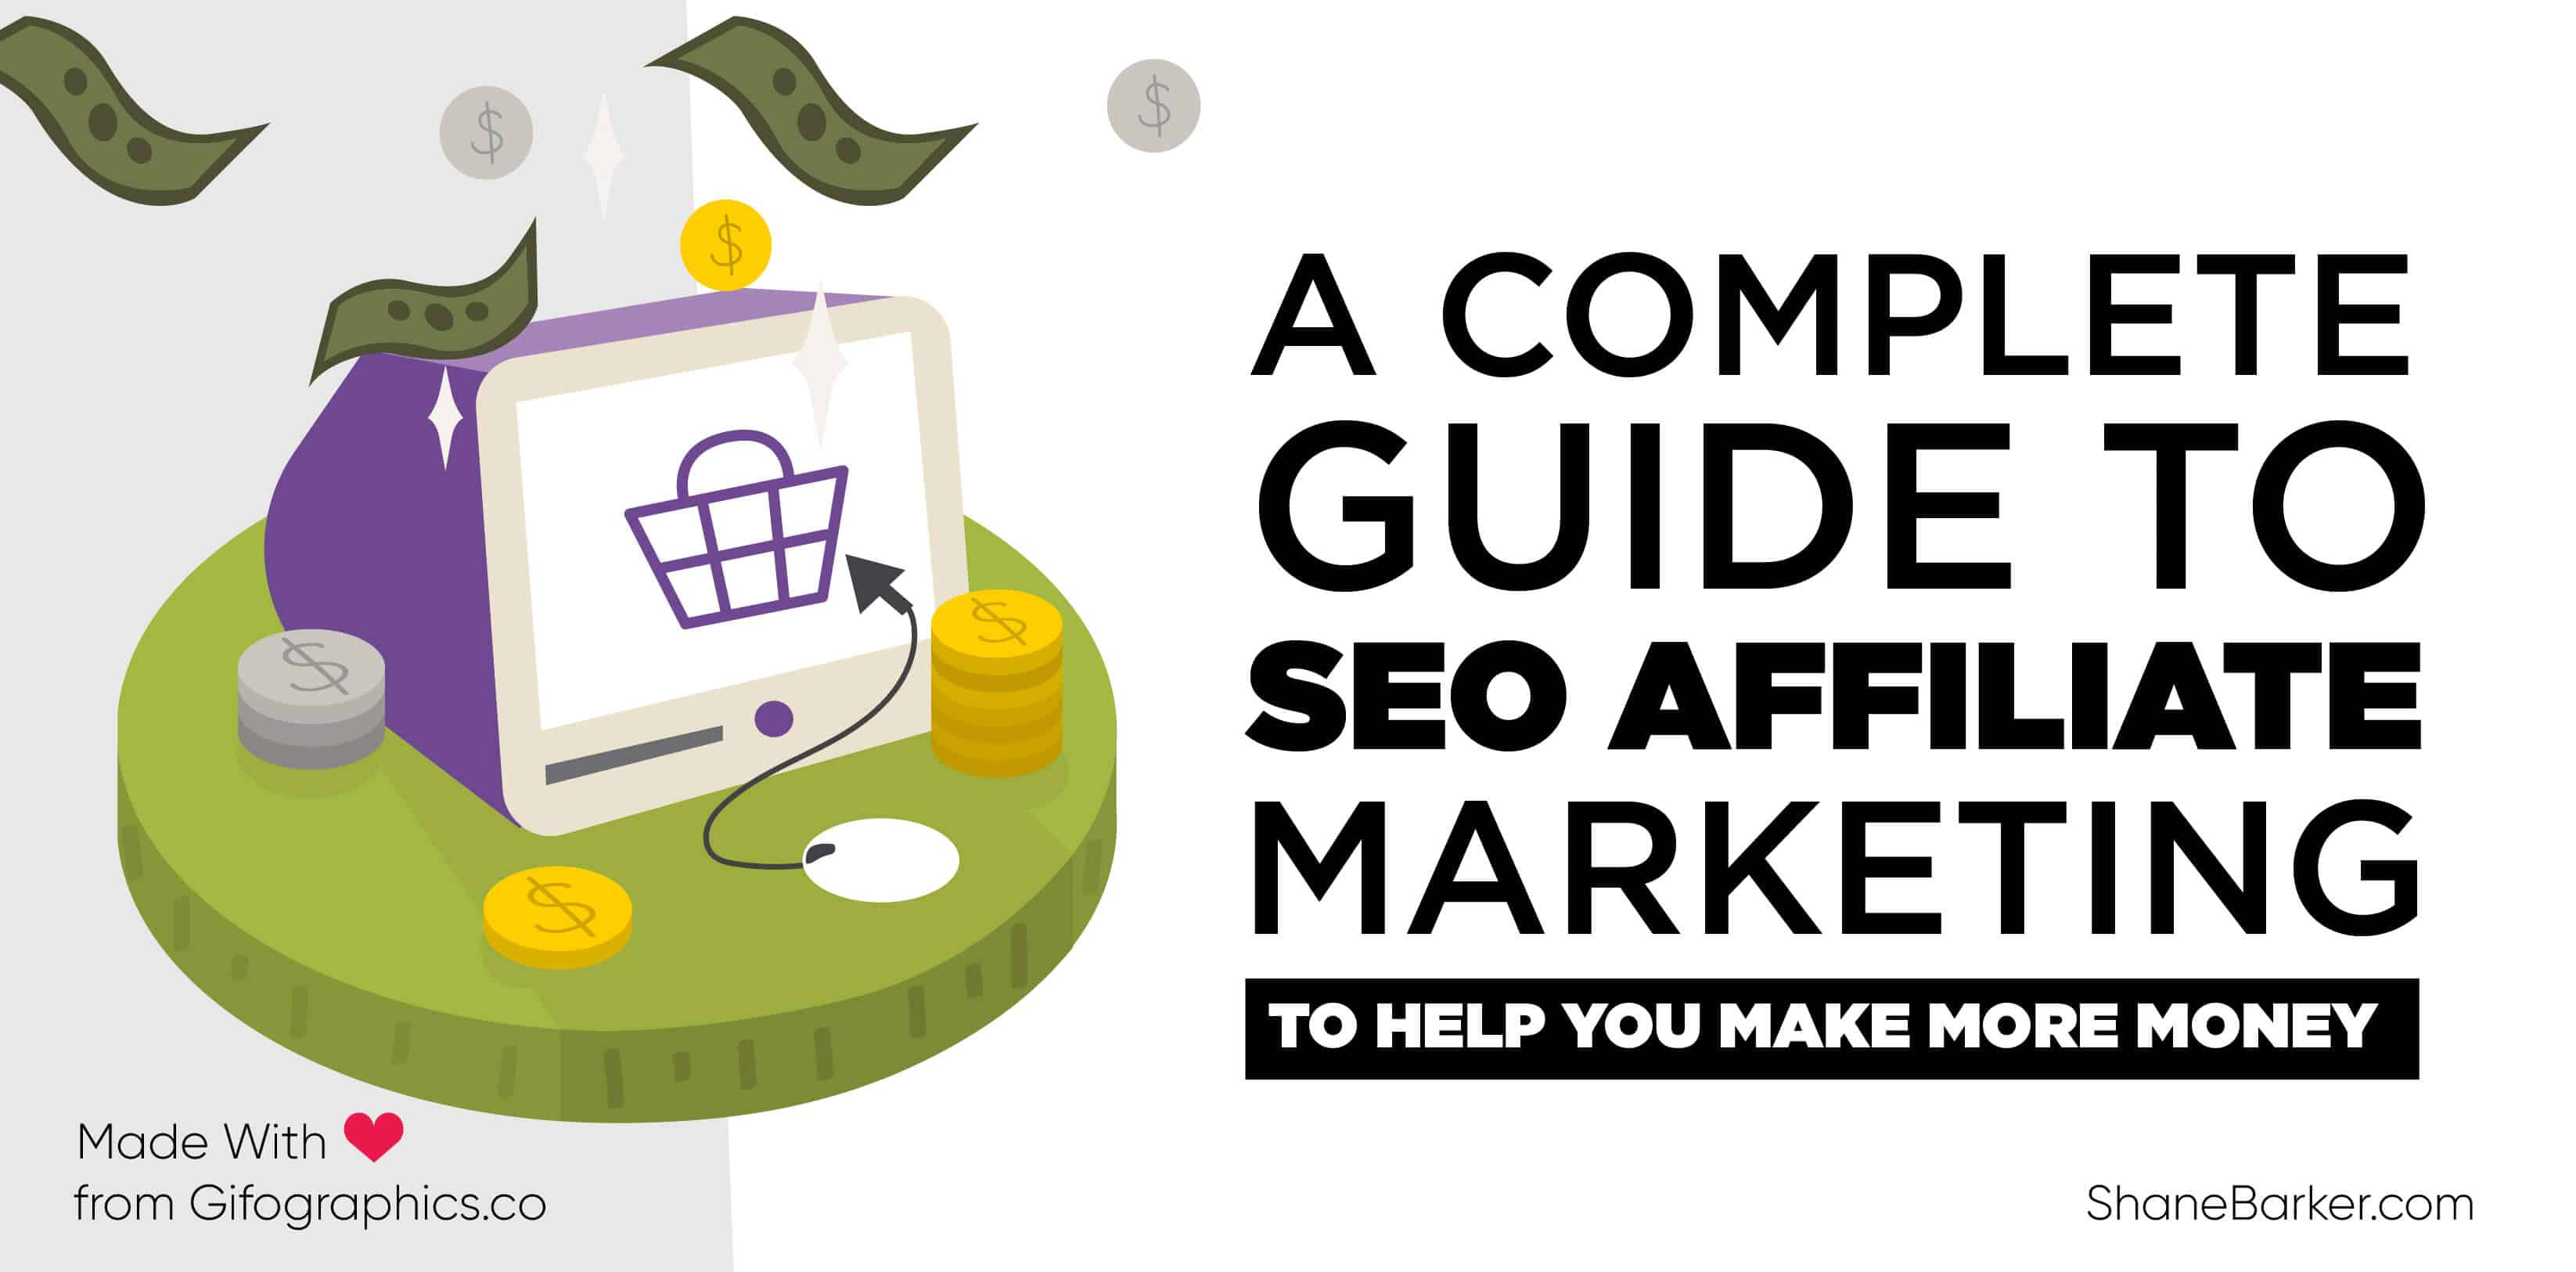 A Complete Guide to SEO Affiliate Marketing to Help You Make More Money